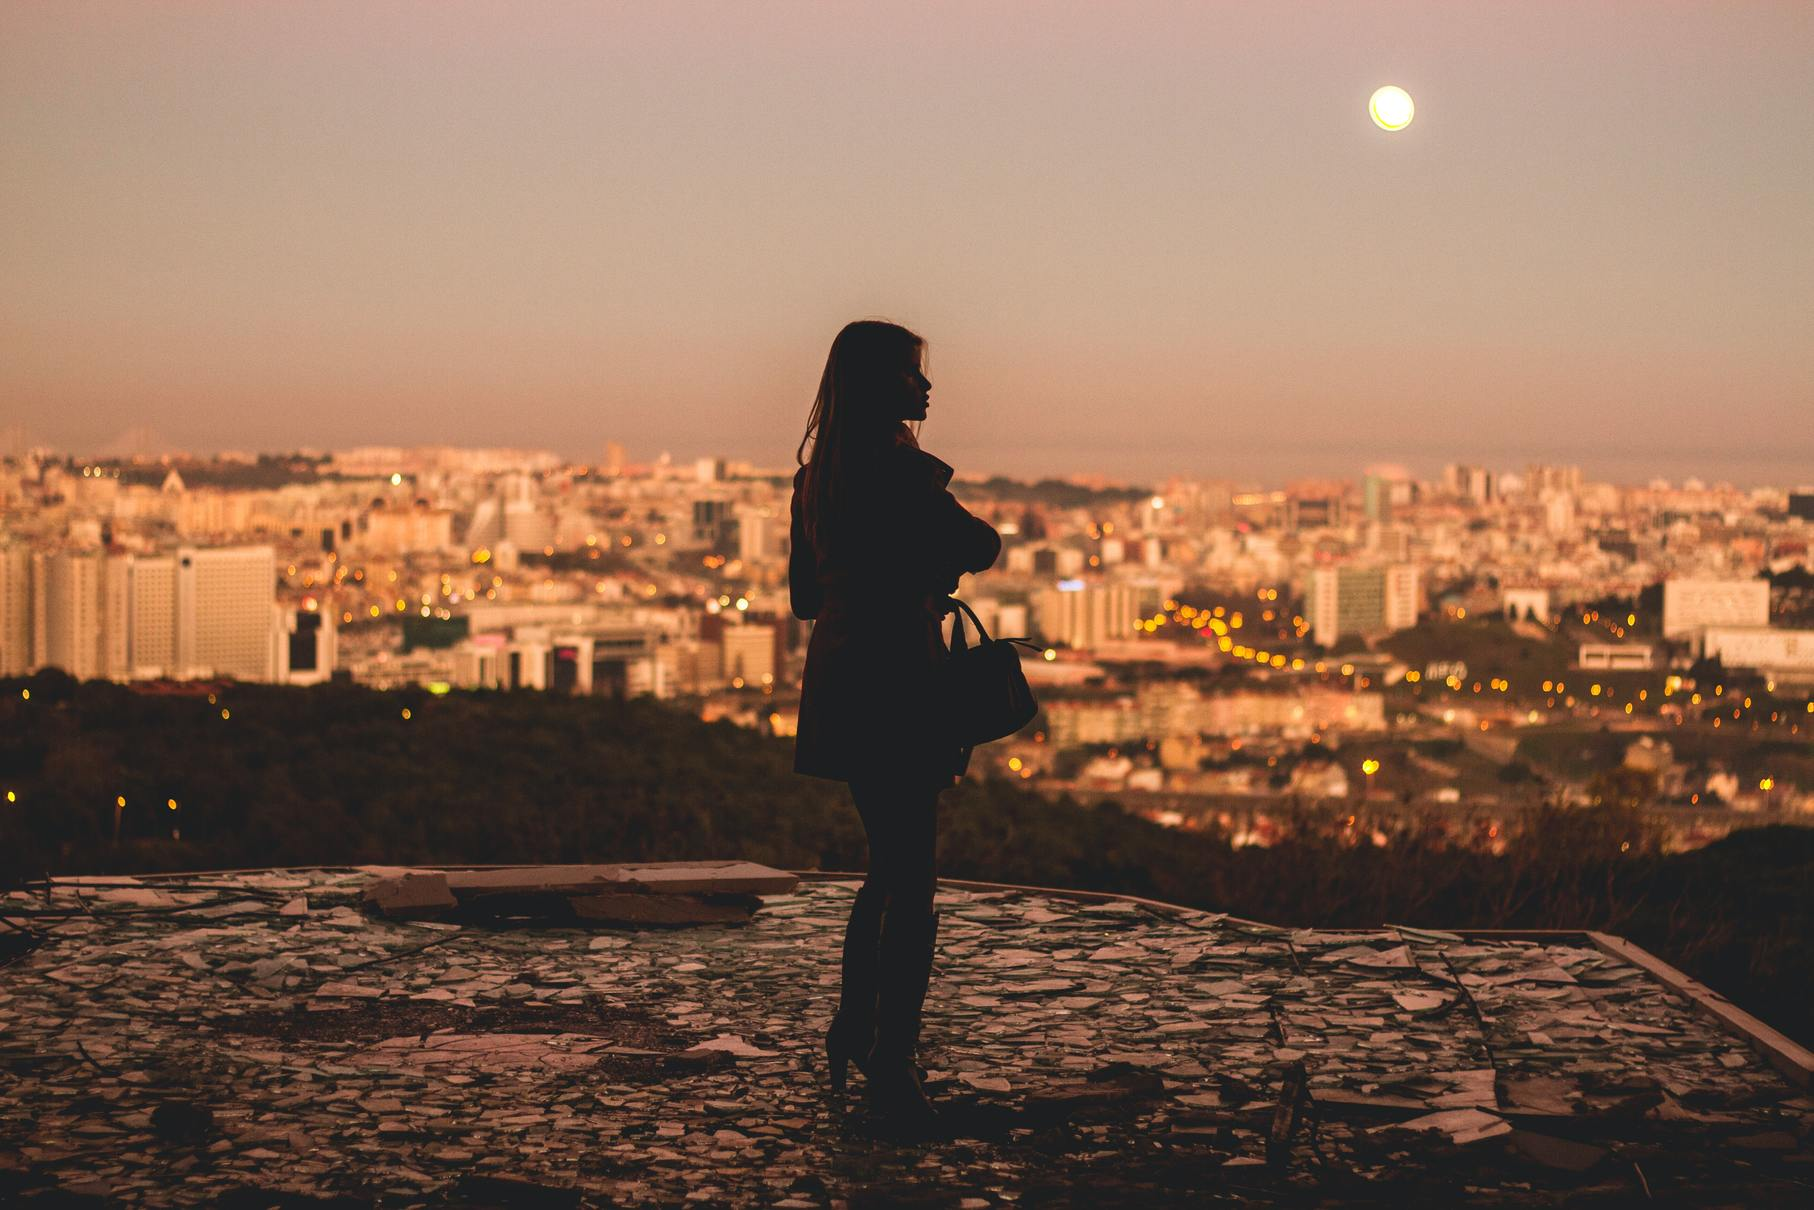 woman in silhouette standing before a city